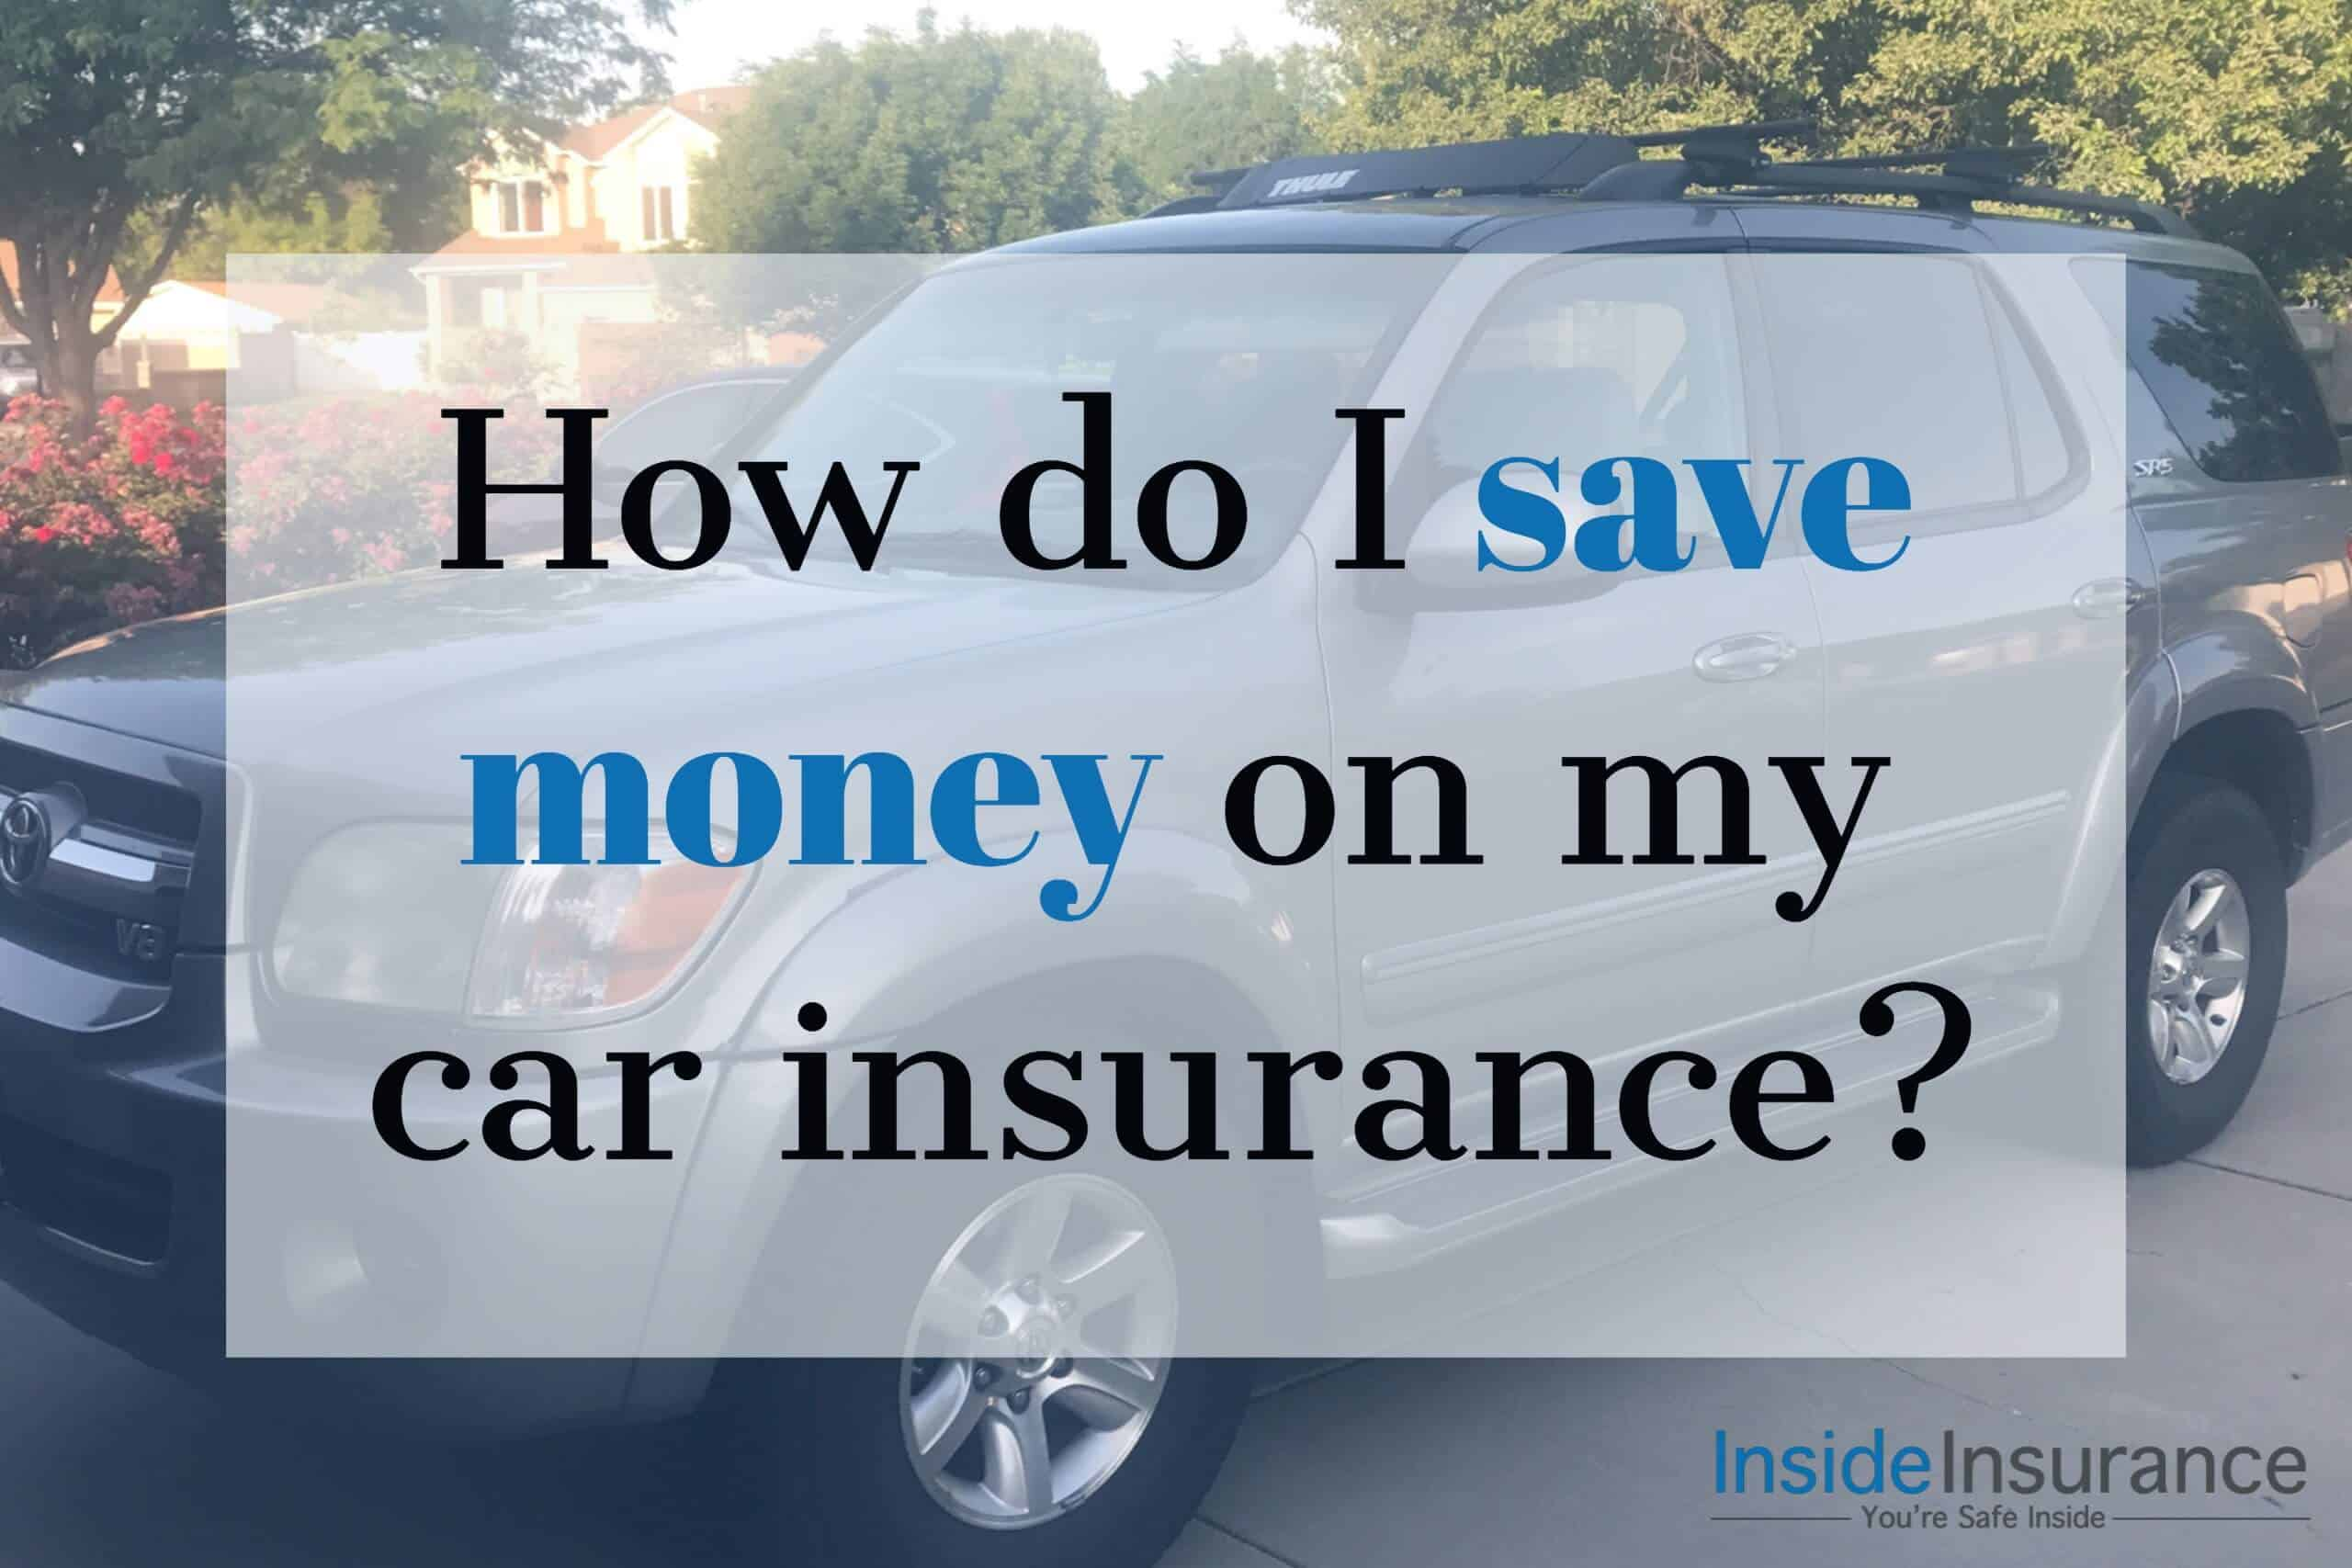 How do I save money on my car insurance | Inside Insurance - South ...